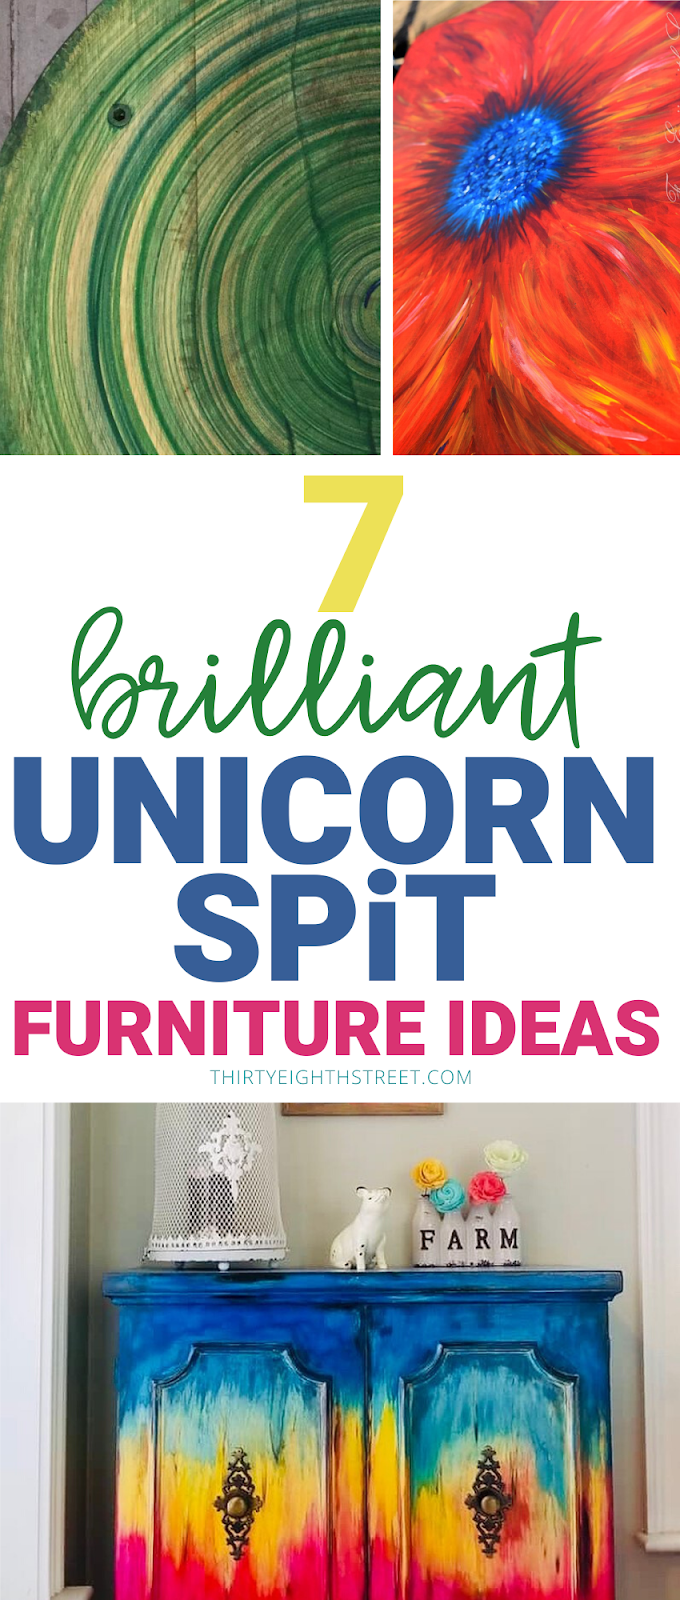 unicorn spit, unicorn spit stain, how to use unicorn spit, unicorn spit furniture ideas, unicorn spit furniture makeovers